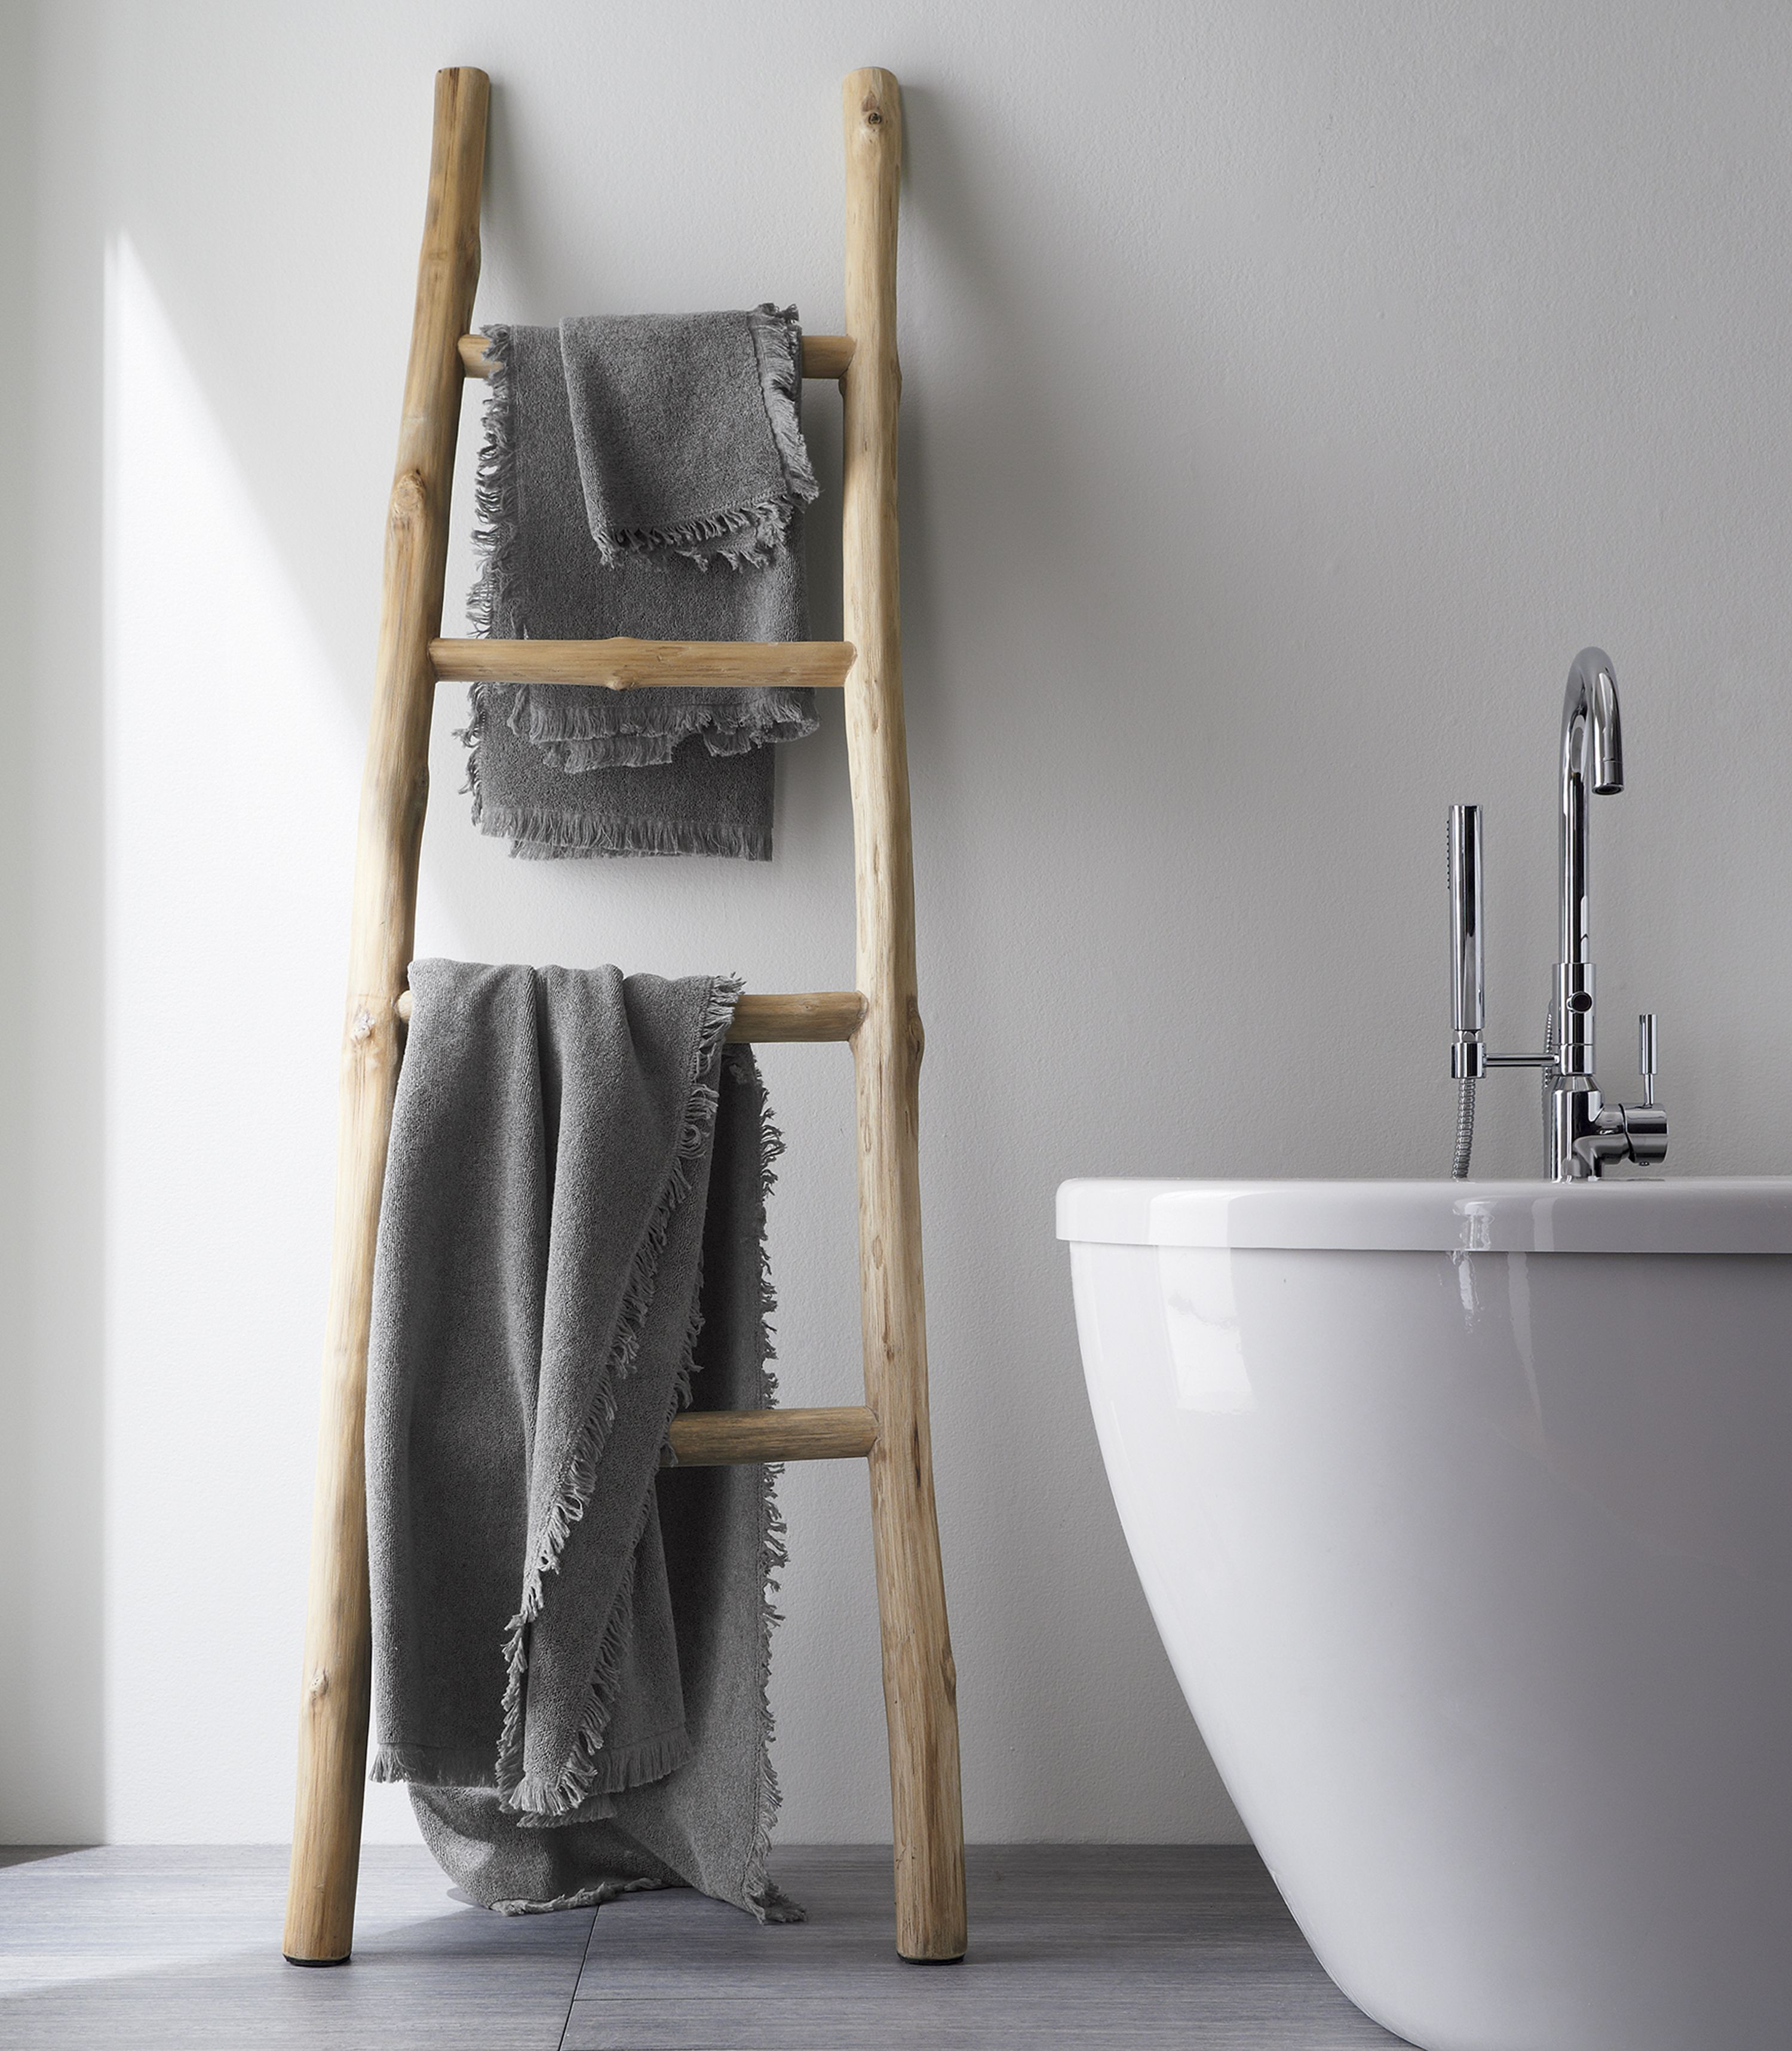 Delicate Fringe Border And Warm Grey Give The Basic Bath Towel A Style Upgrade, Crafted Of Plush